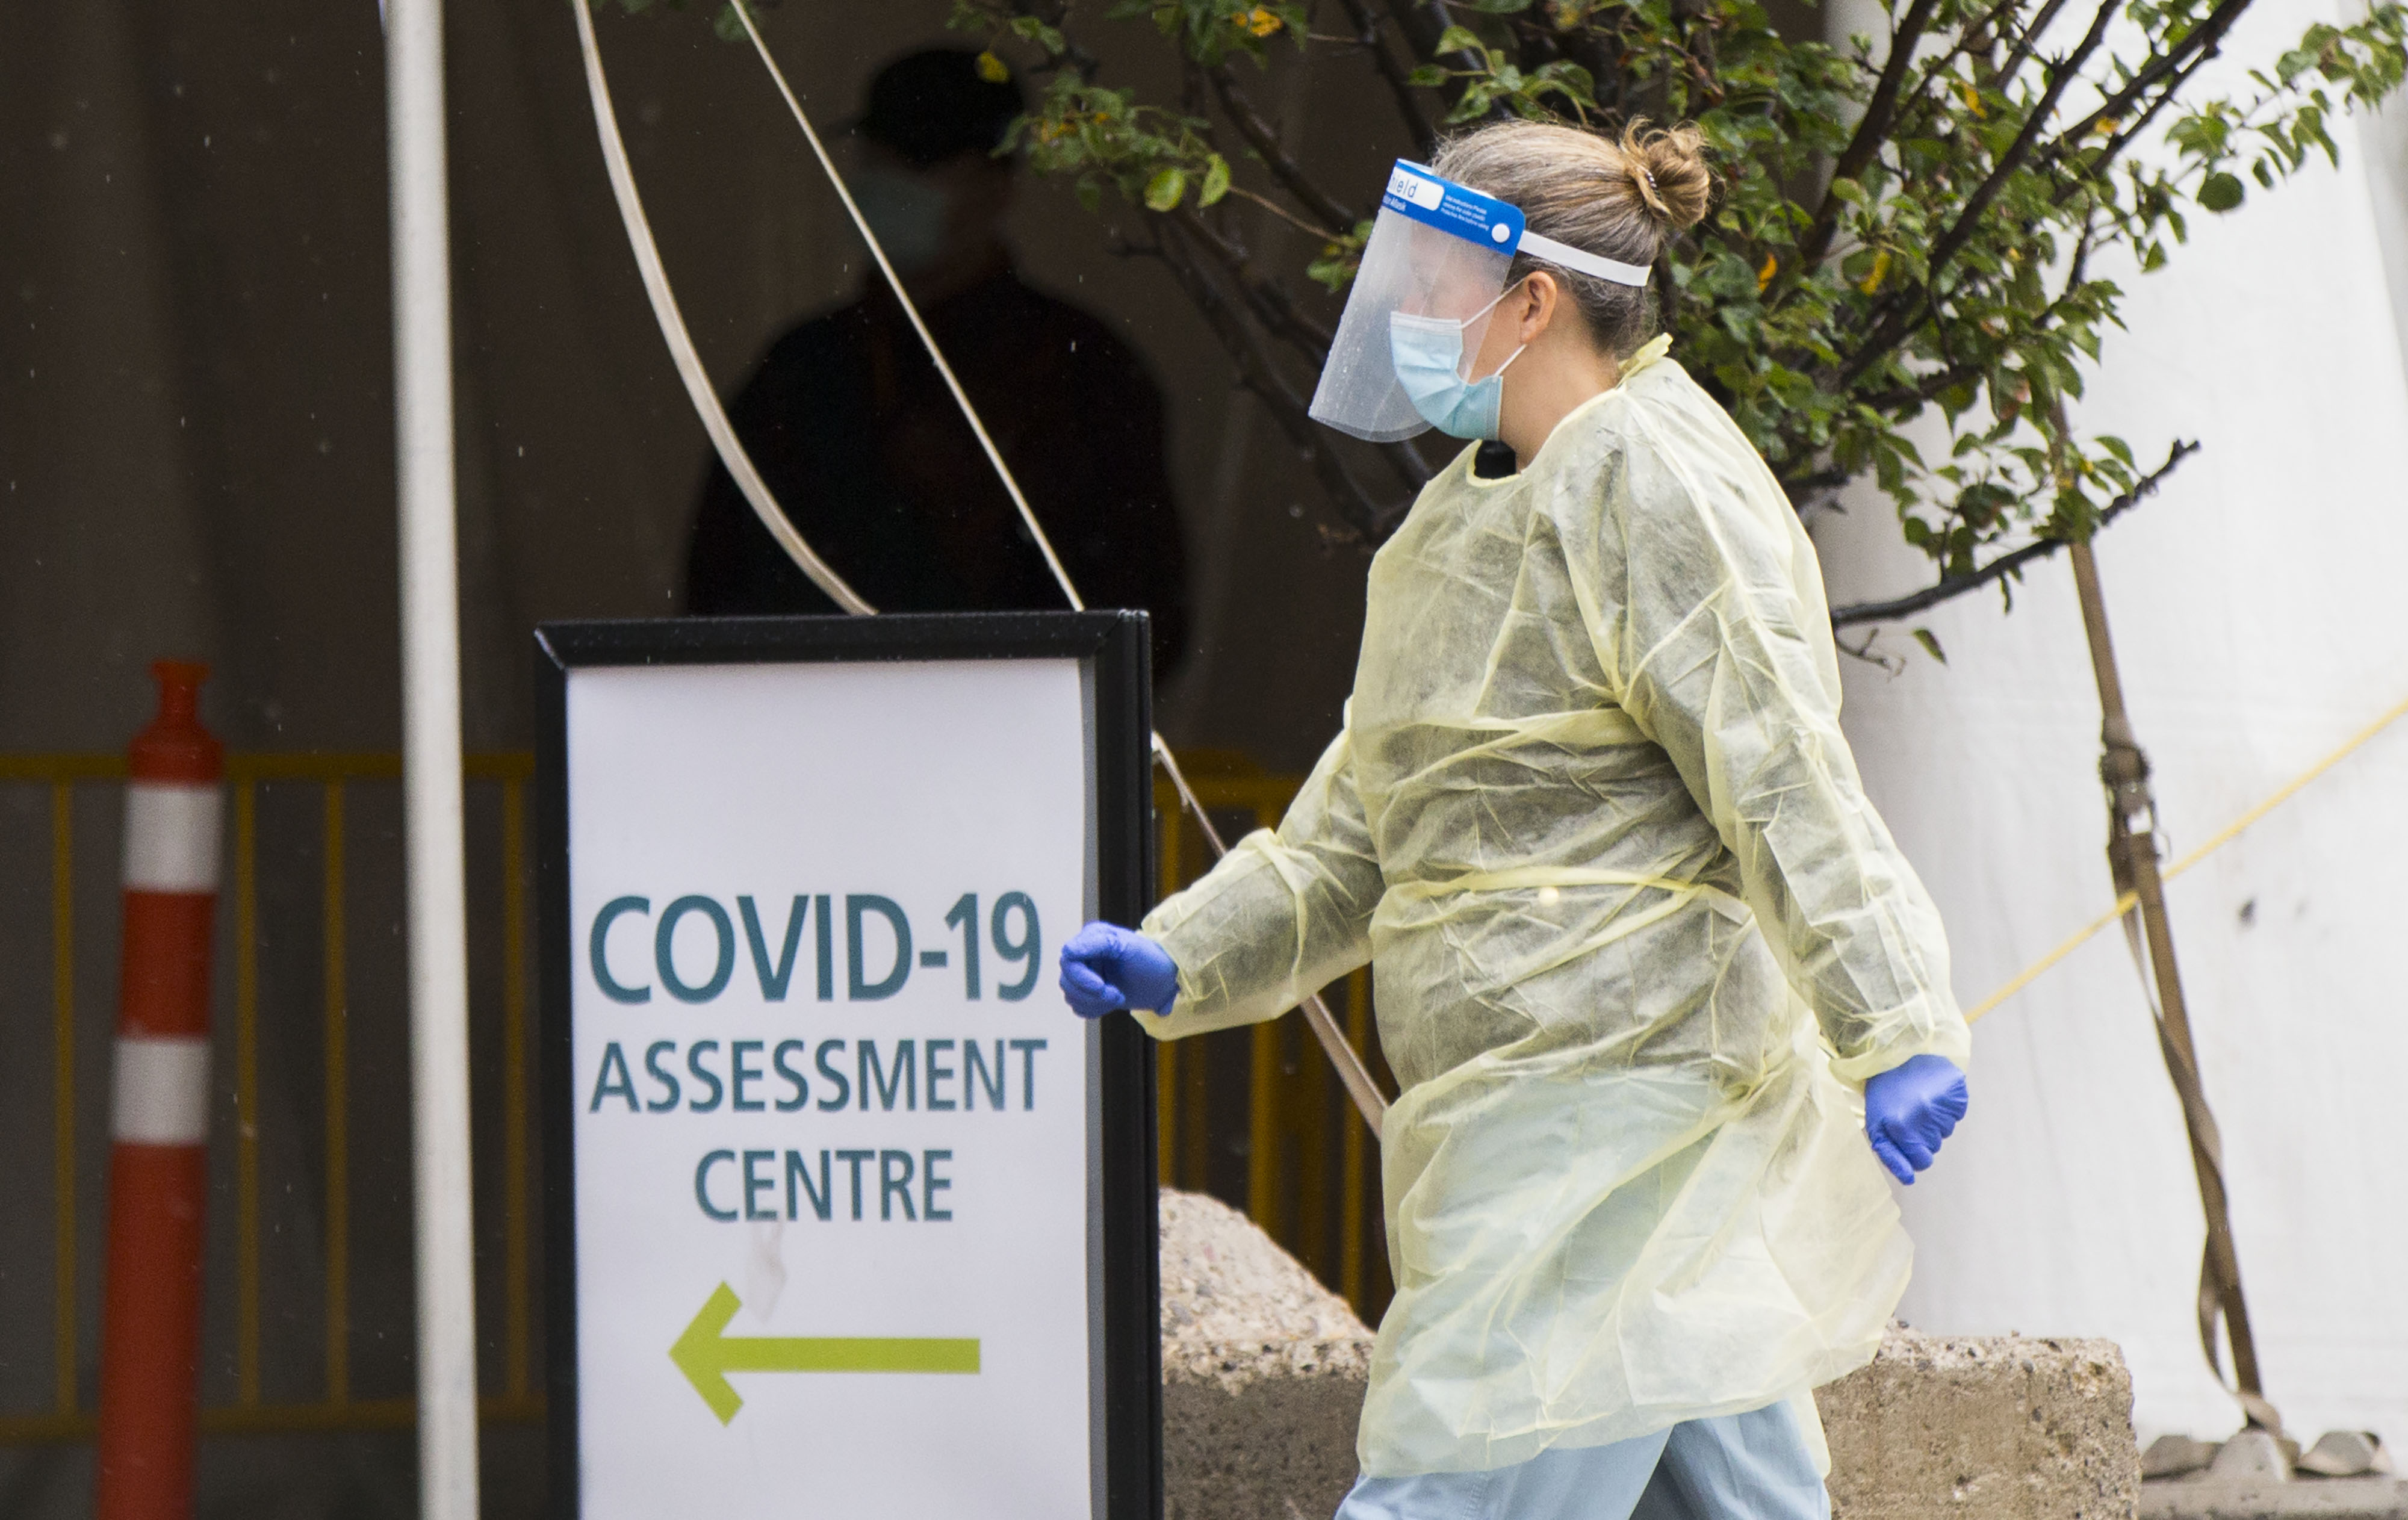 Nova Scotia Reports 4 New Covid 19 Cases On Thursday 1 At School In Eastern Passage Halifax Globalnews Ca